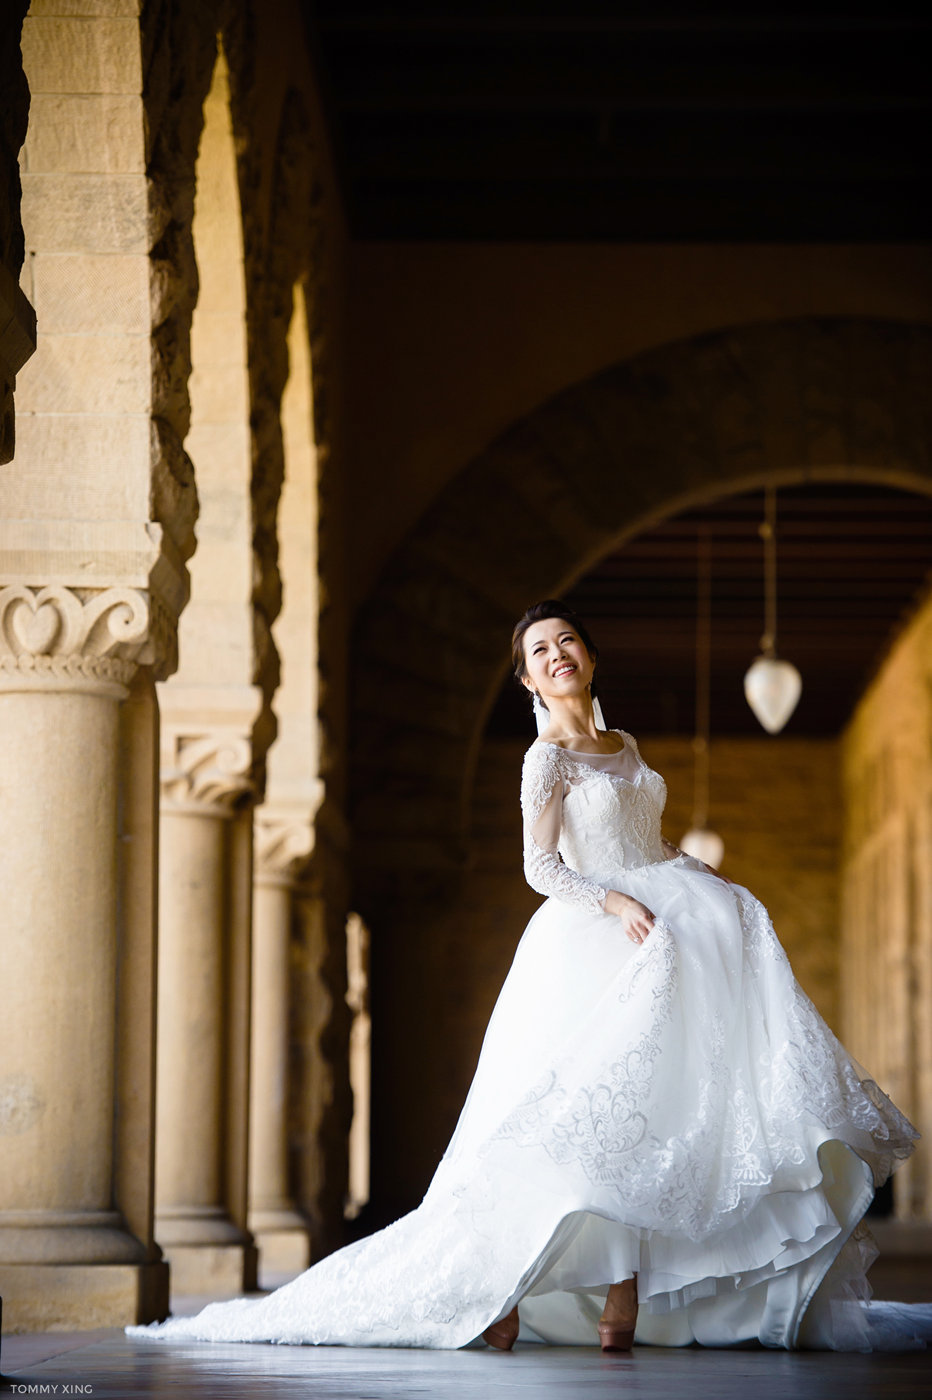 stanford memorial church wedding 旧金山湾区斯坦福教堂婚礼 Tommy Xing Photography 100.jpg